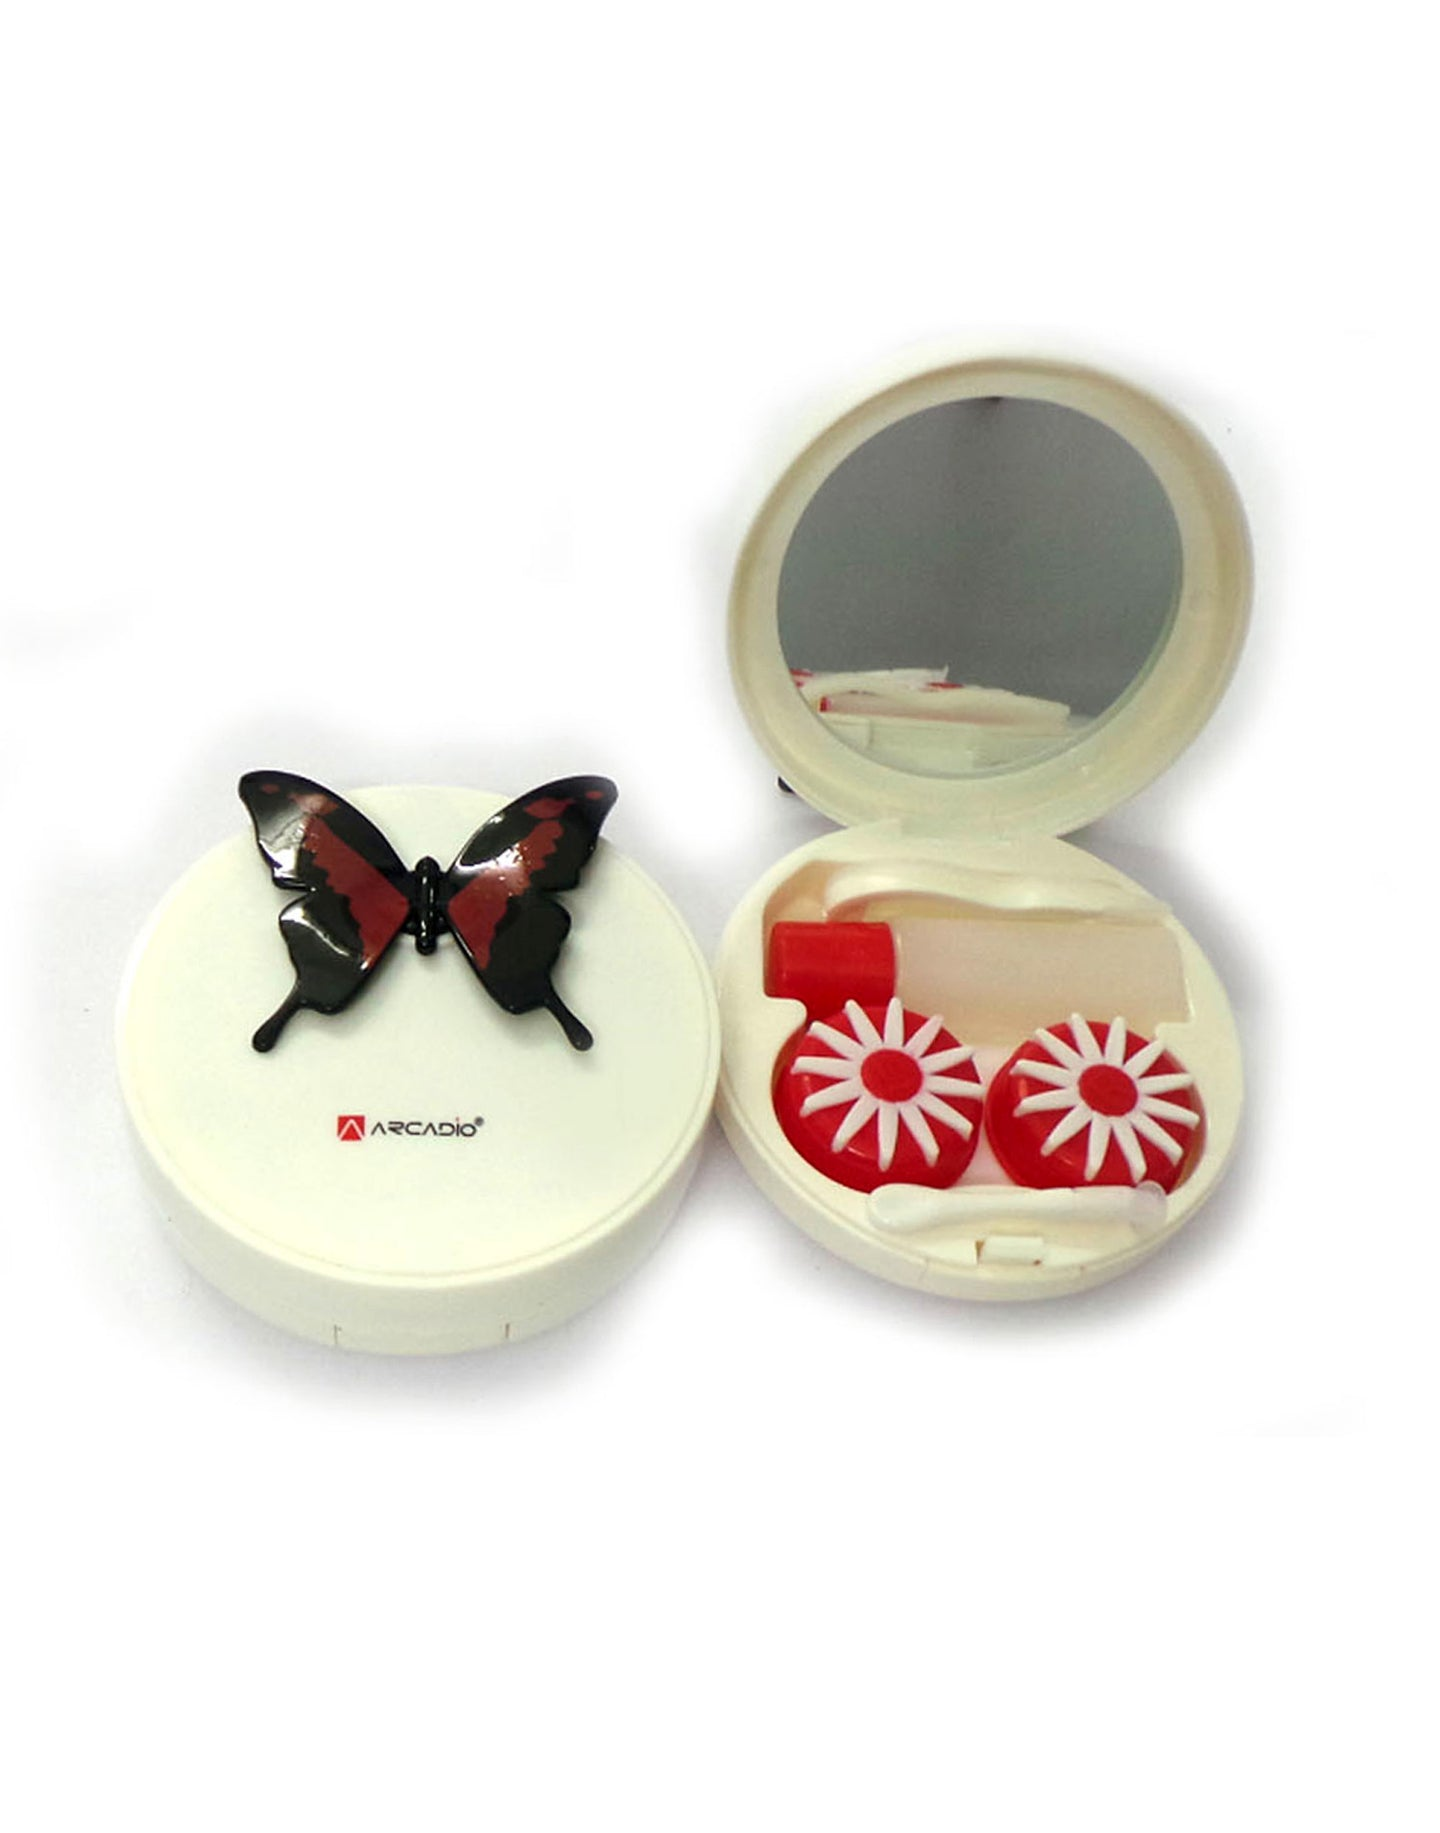 BUTTERFLY EFFECT - Designer Contact Lens Cases - A8063A-RD - ARCADIO LIFESTYLE